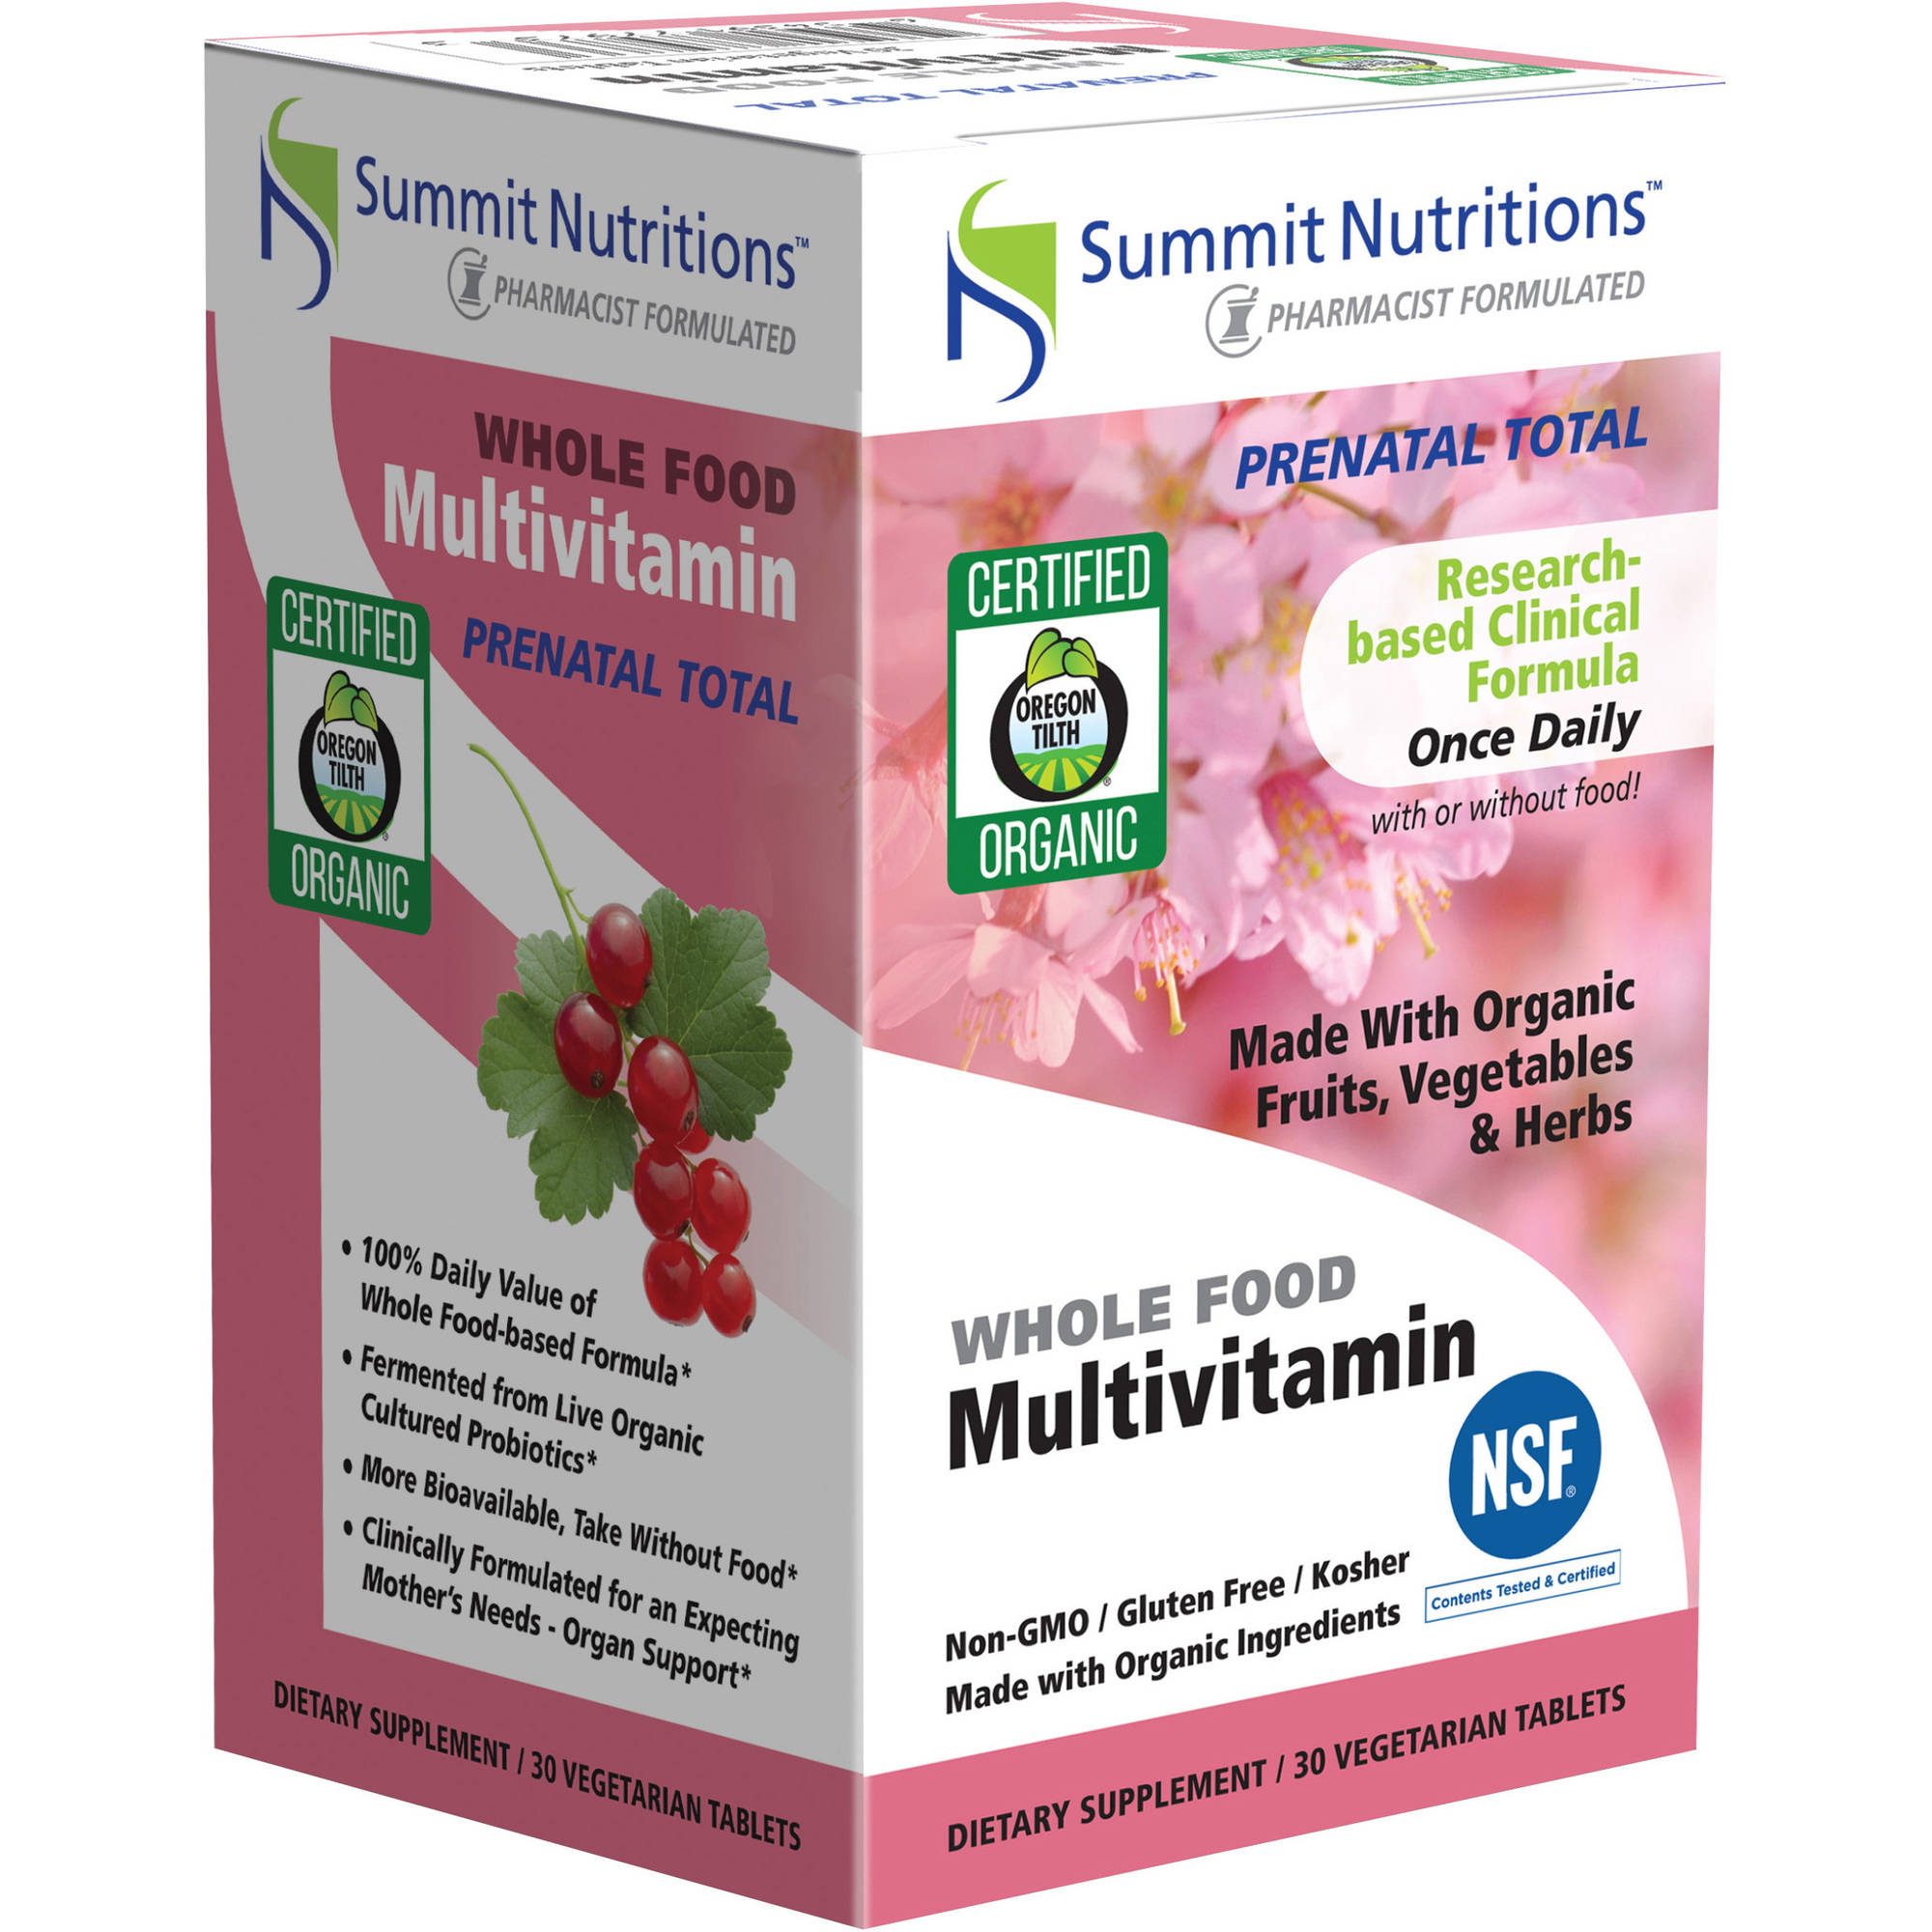 Summit Nutritions Prenatal Total Whole Food Multivitamin Dietary Supplement Vegetarian Tablets, 30 count